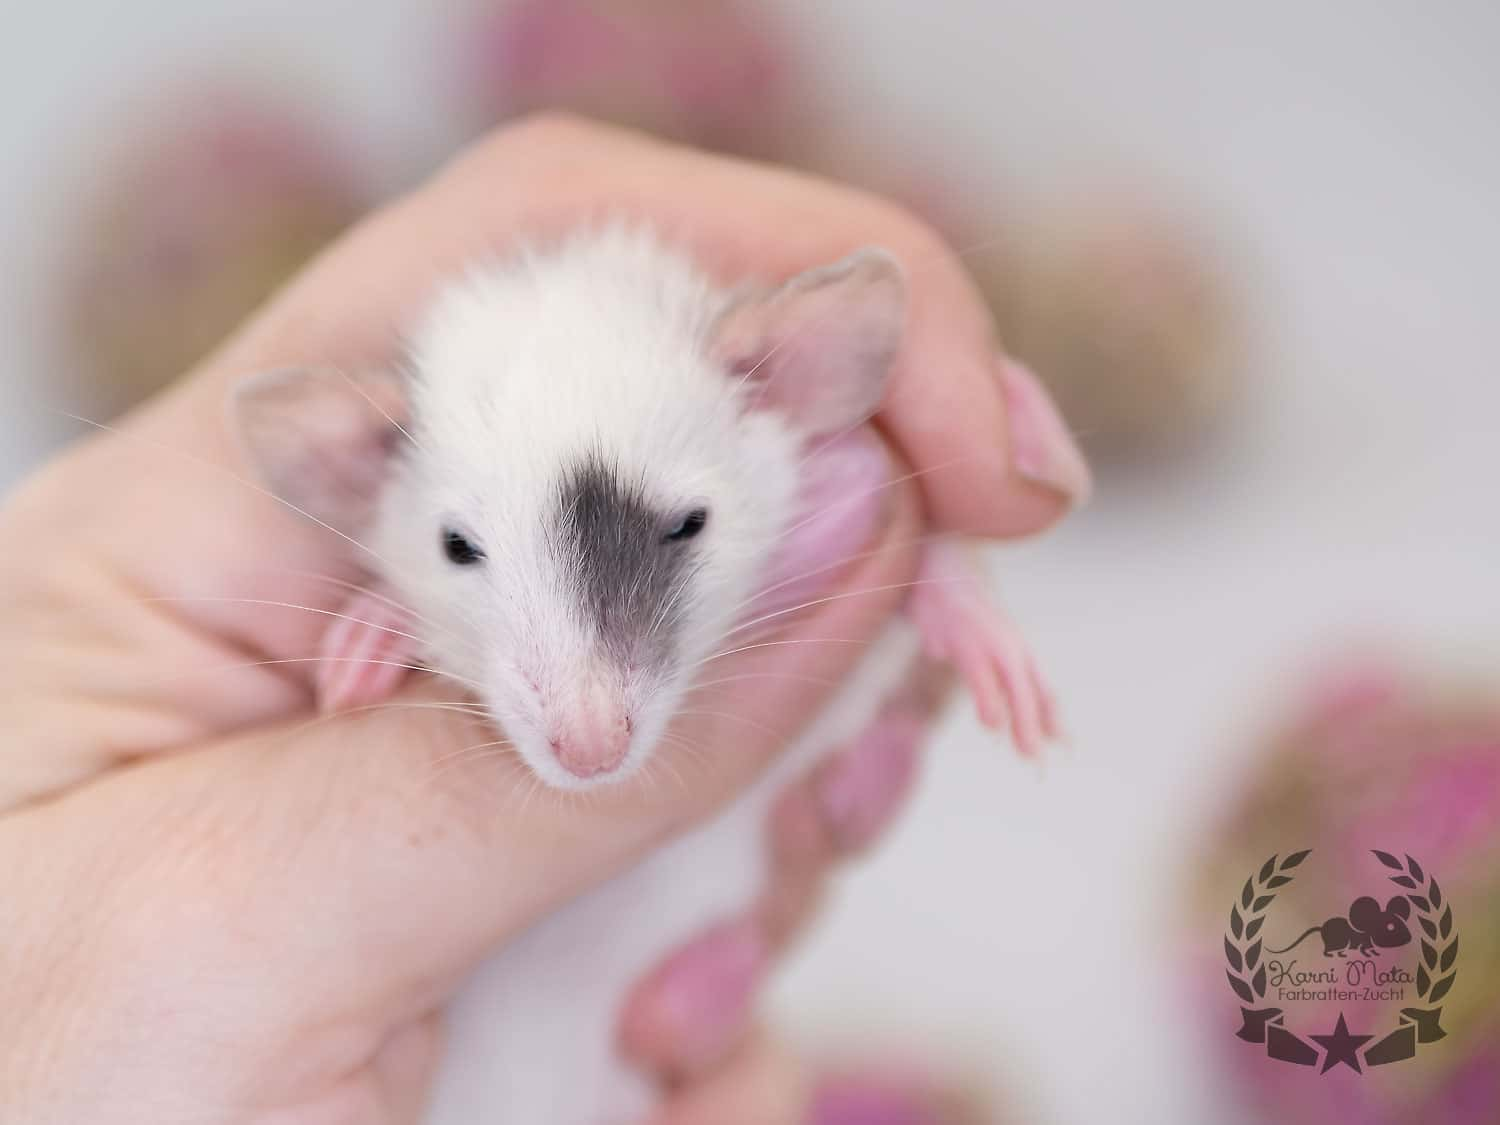 Drosselbart KMB5m07, Farbratte (Fancyrat) Black Patched Dumbo